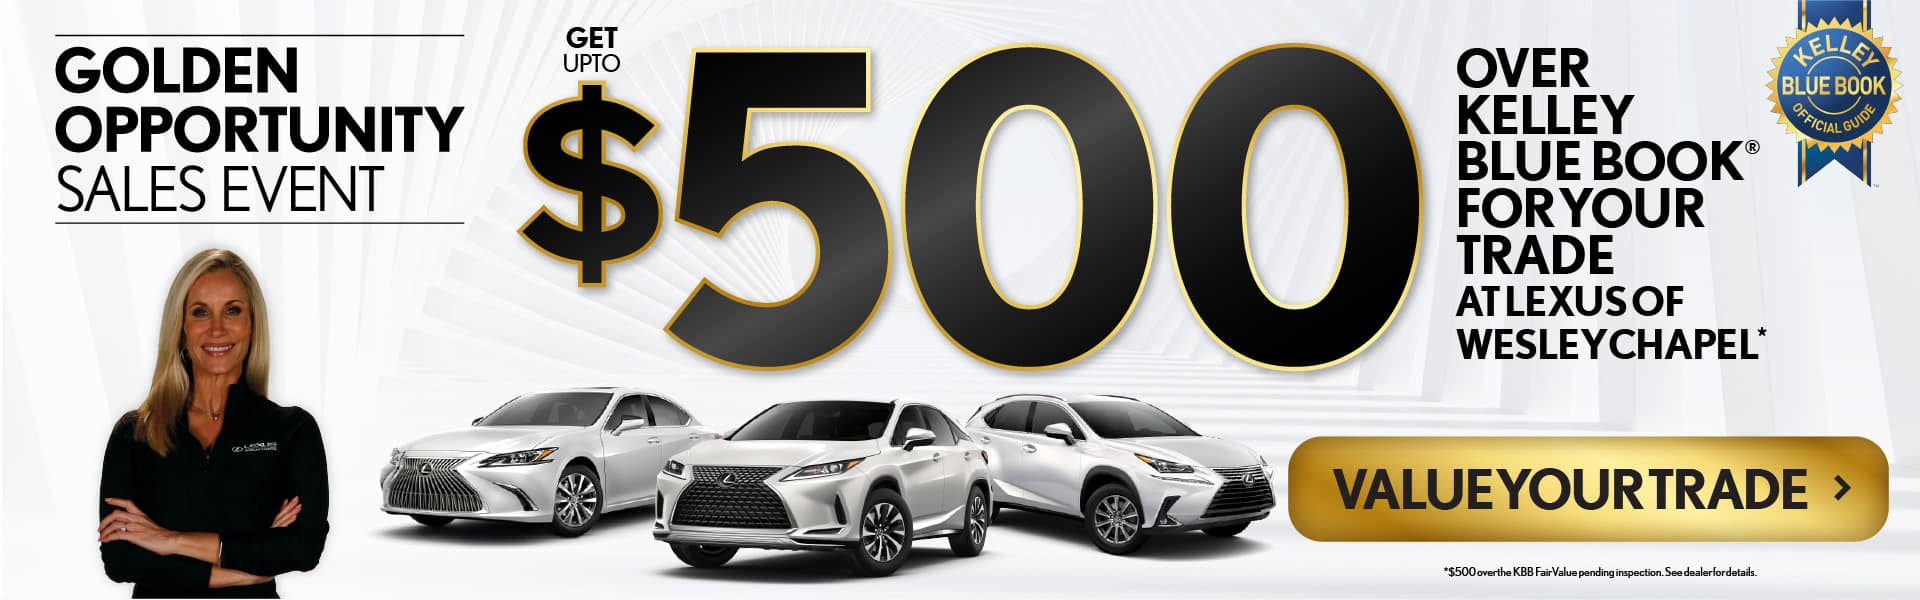 Golden Opportunity Sales Event. Get up to $500 Over Kelley Blue Book For Your Trade at Lexus of Wesley Chapel. Value Your Trade.